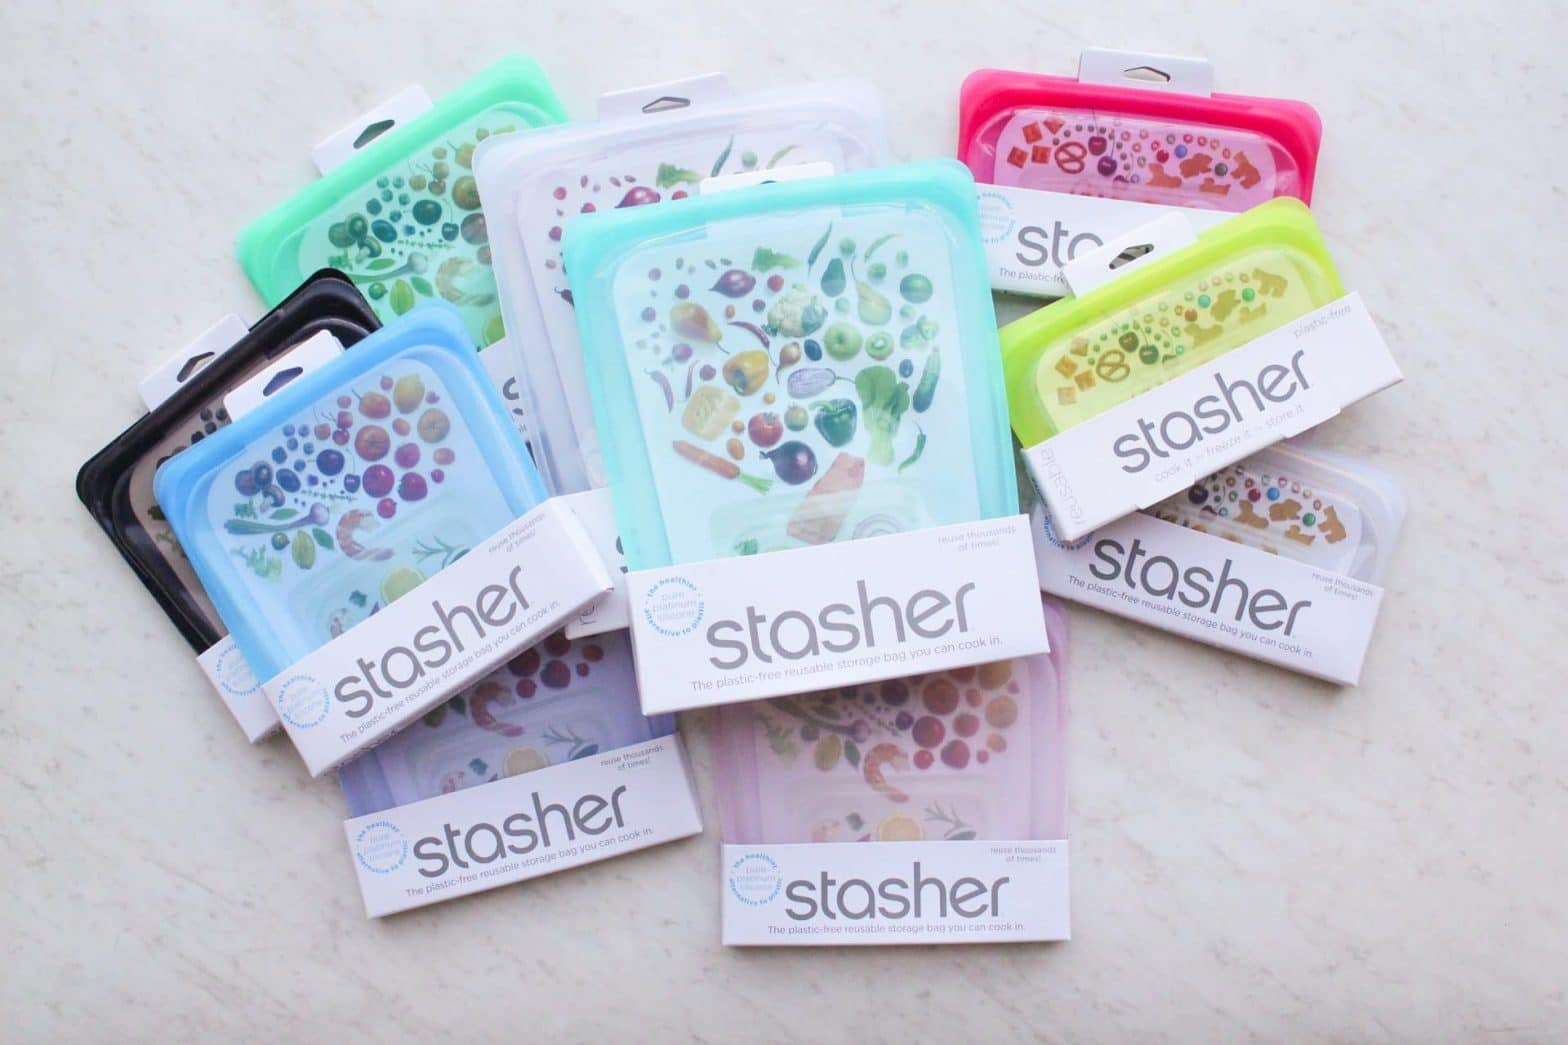 Stasher Bags Review: How I Minimize my Plastic Usage